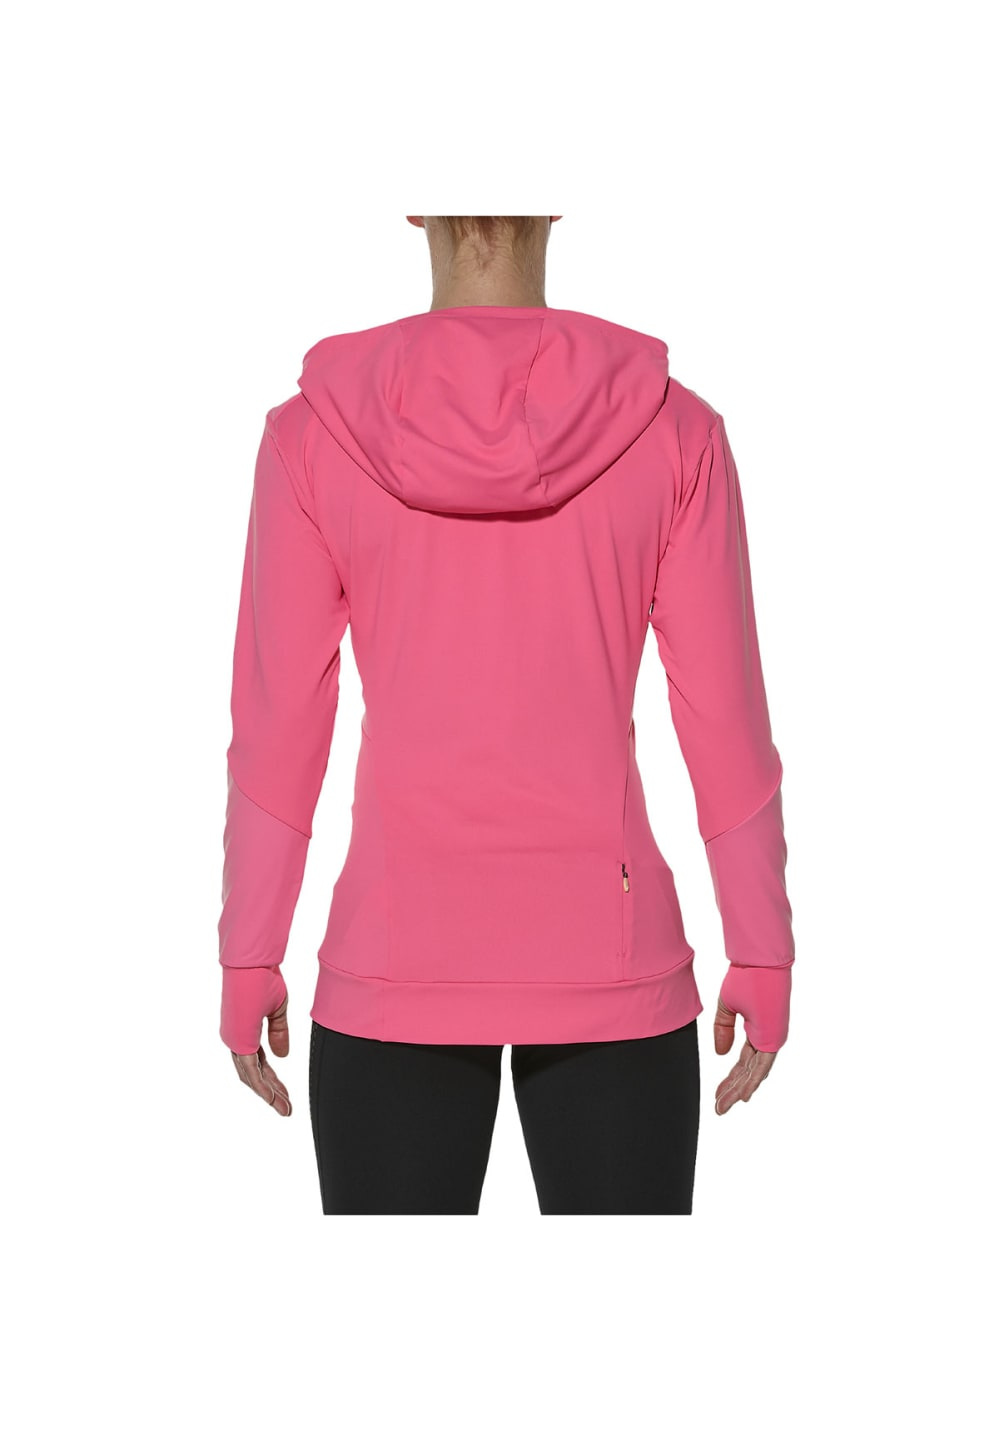 b8c7c6042ff9 ... ASICS Long Sleeve Jersey Hoodie - Running tops for Women - Pink. Back  to Overview. 1  2. Previous